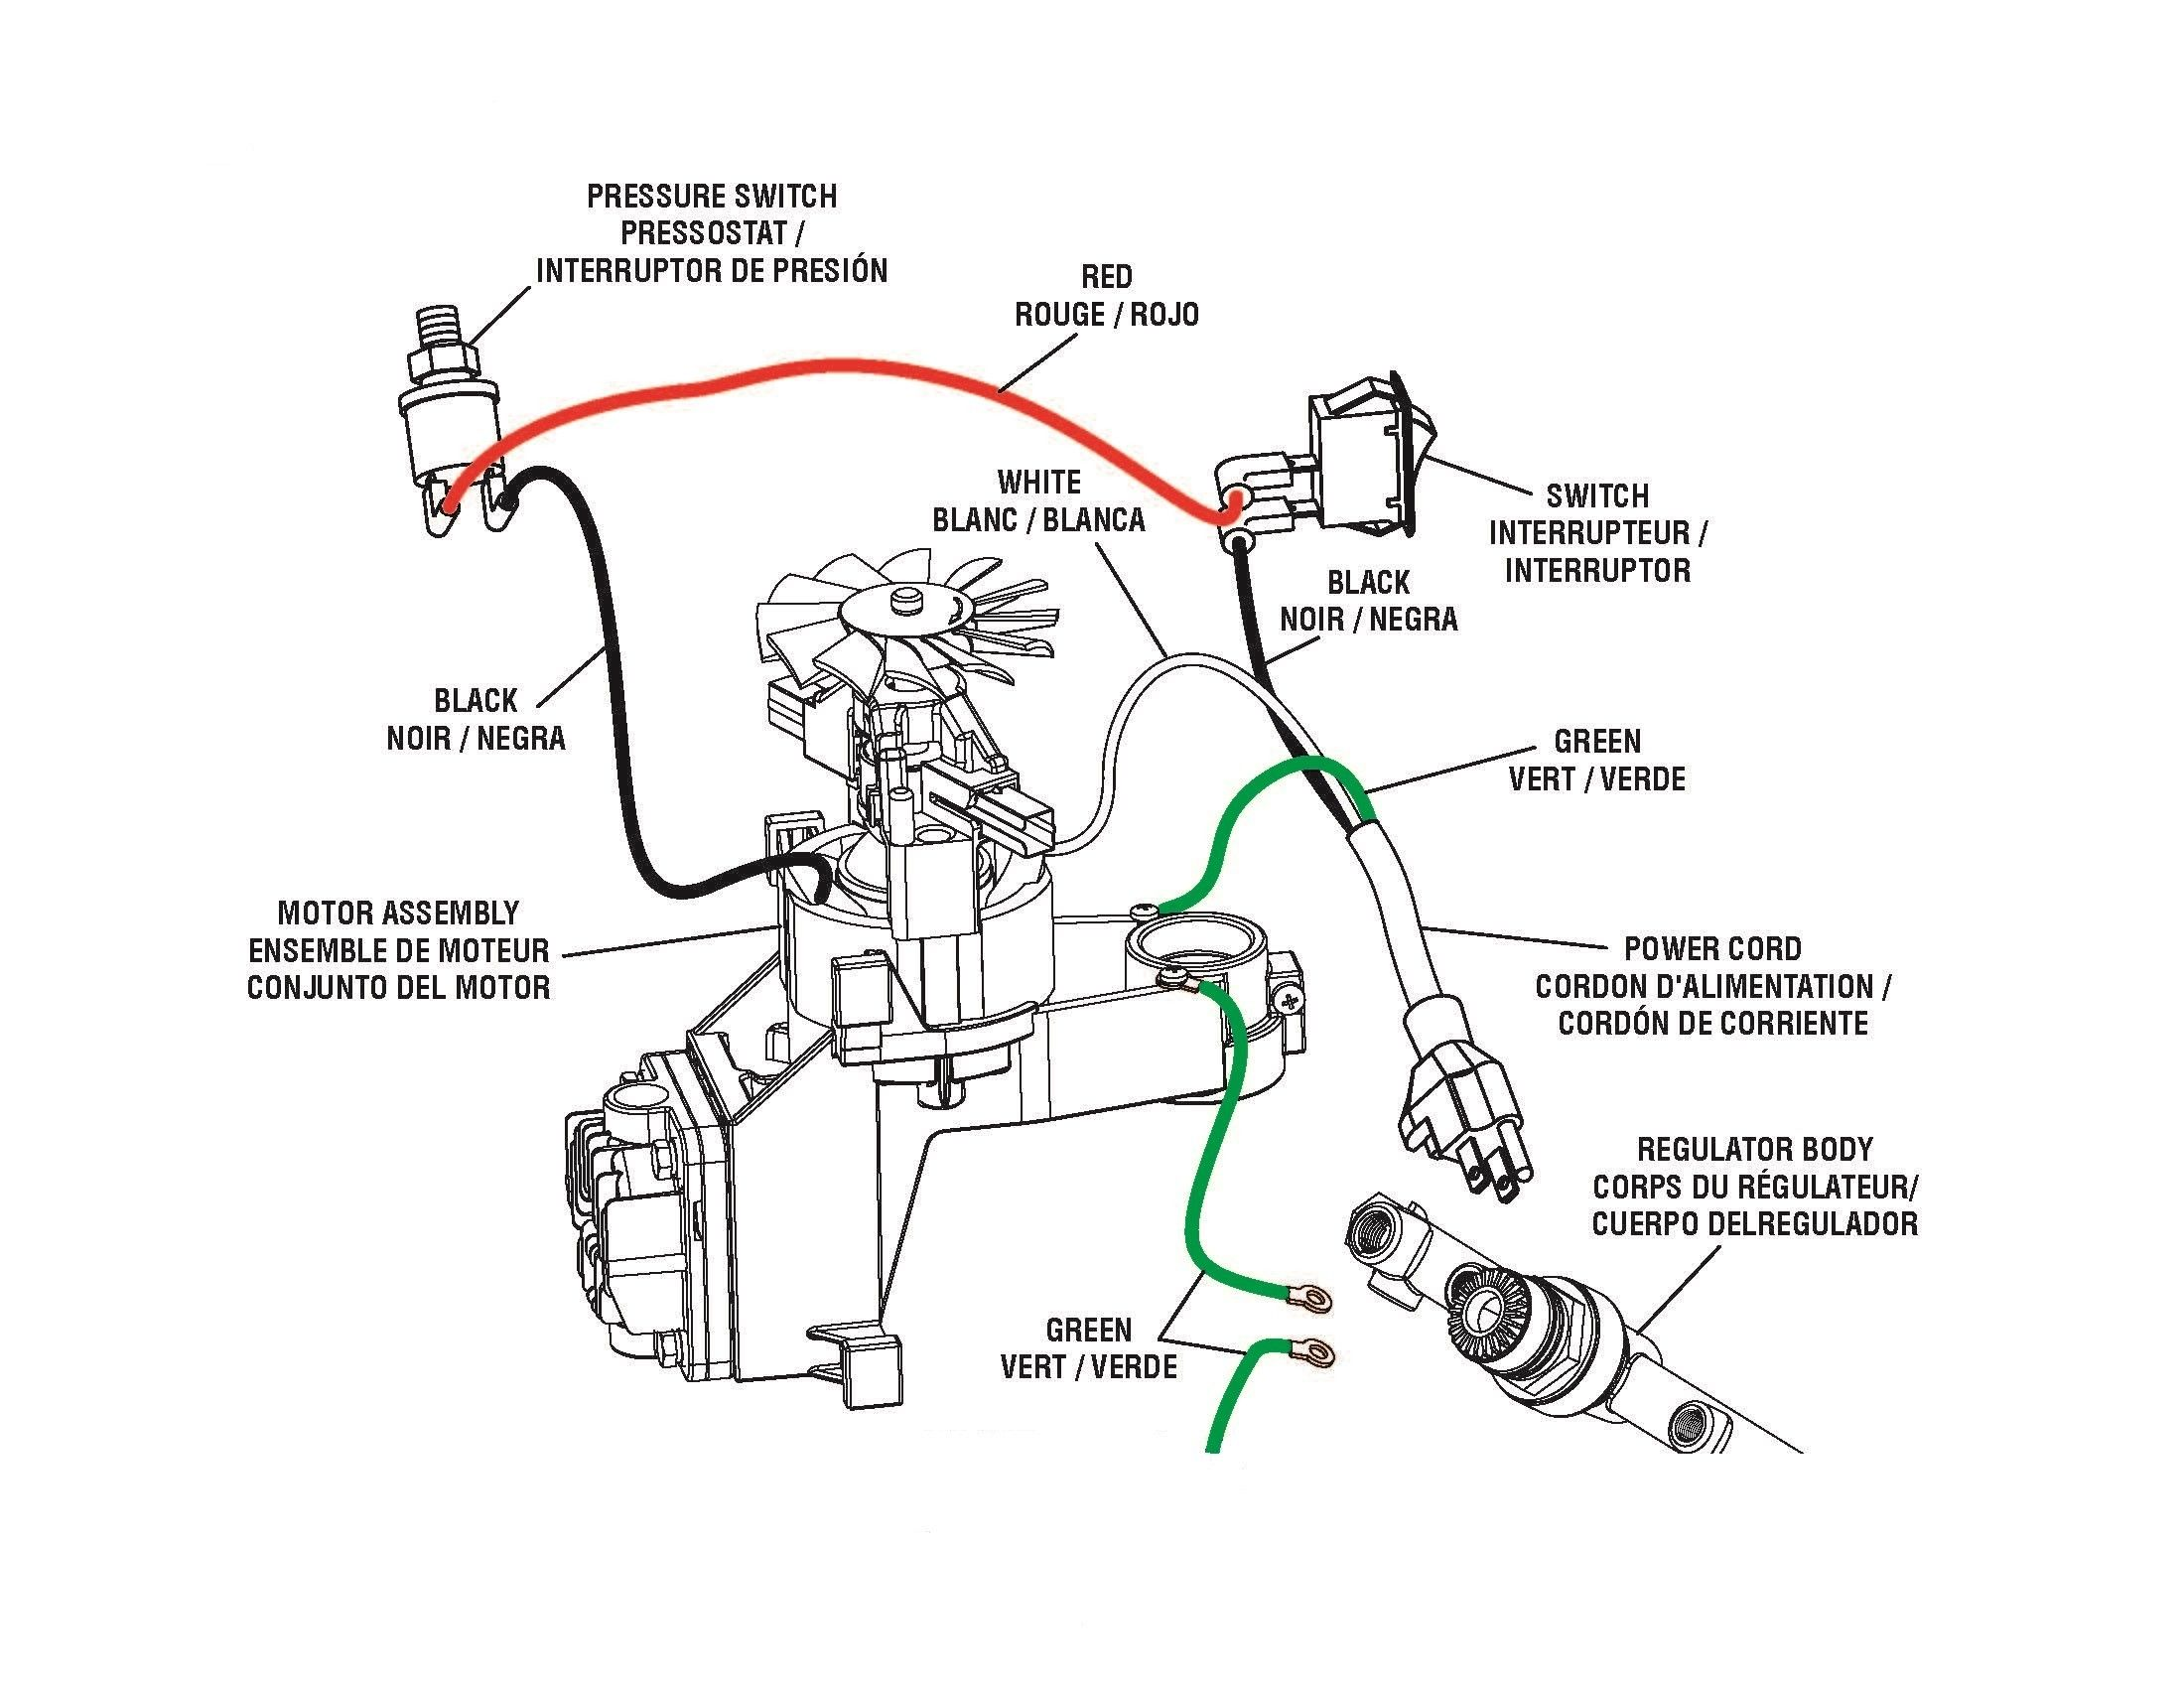 [EQHS_1162]  Unique Wiring Diagram for Air Compressor Pressure Switch | Air compressor  pressure switch, Air compressor, Compressor | Devilbiss Wiring Diagram |  | Pinterest